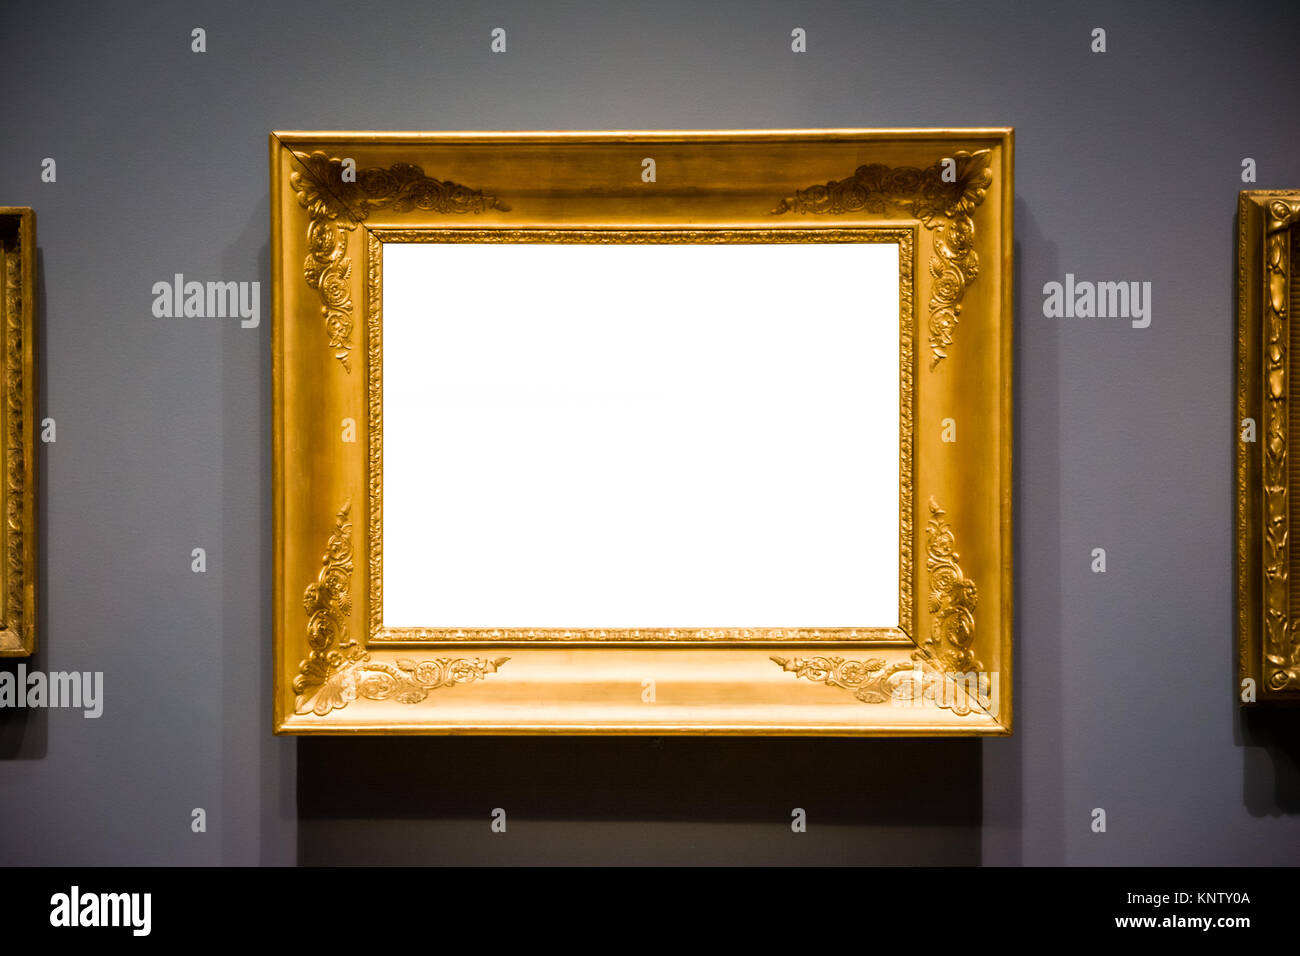 21bbfaf8306 Ornate Picture Frame Art Gallery Museum Exhibit Interior White Clipping Path  Isolated